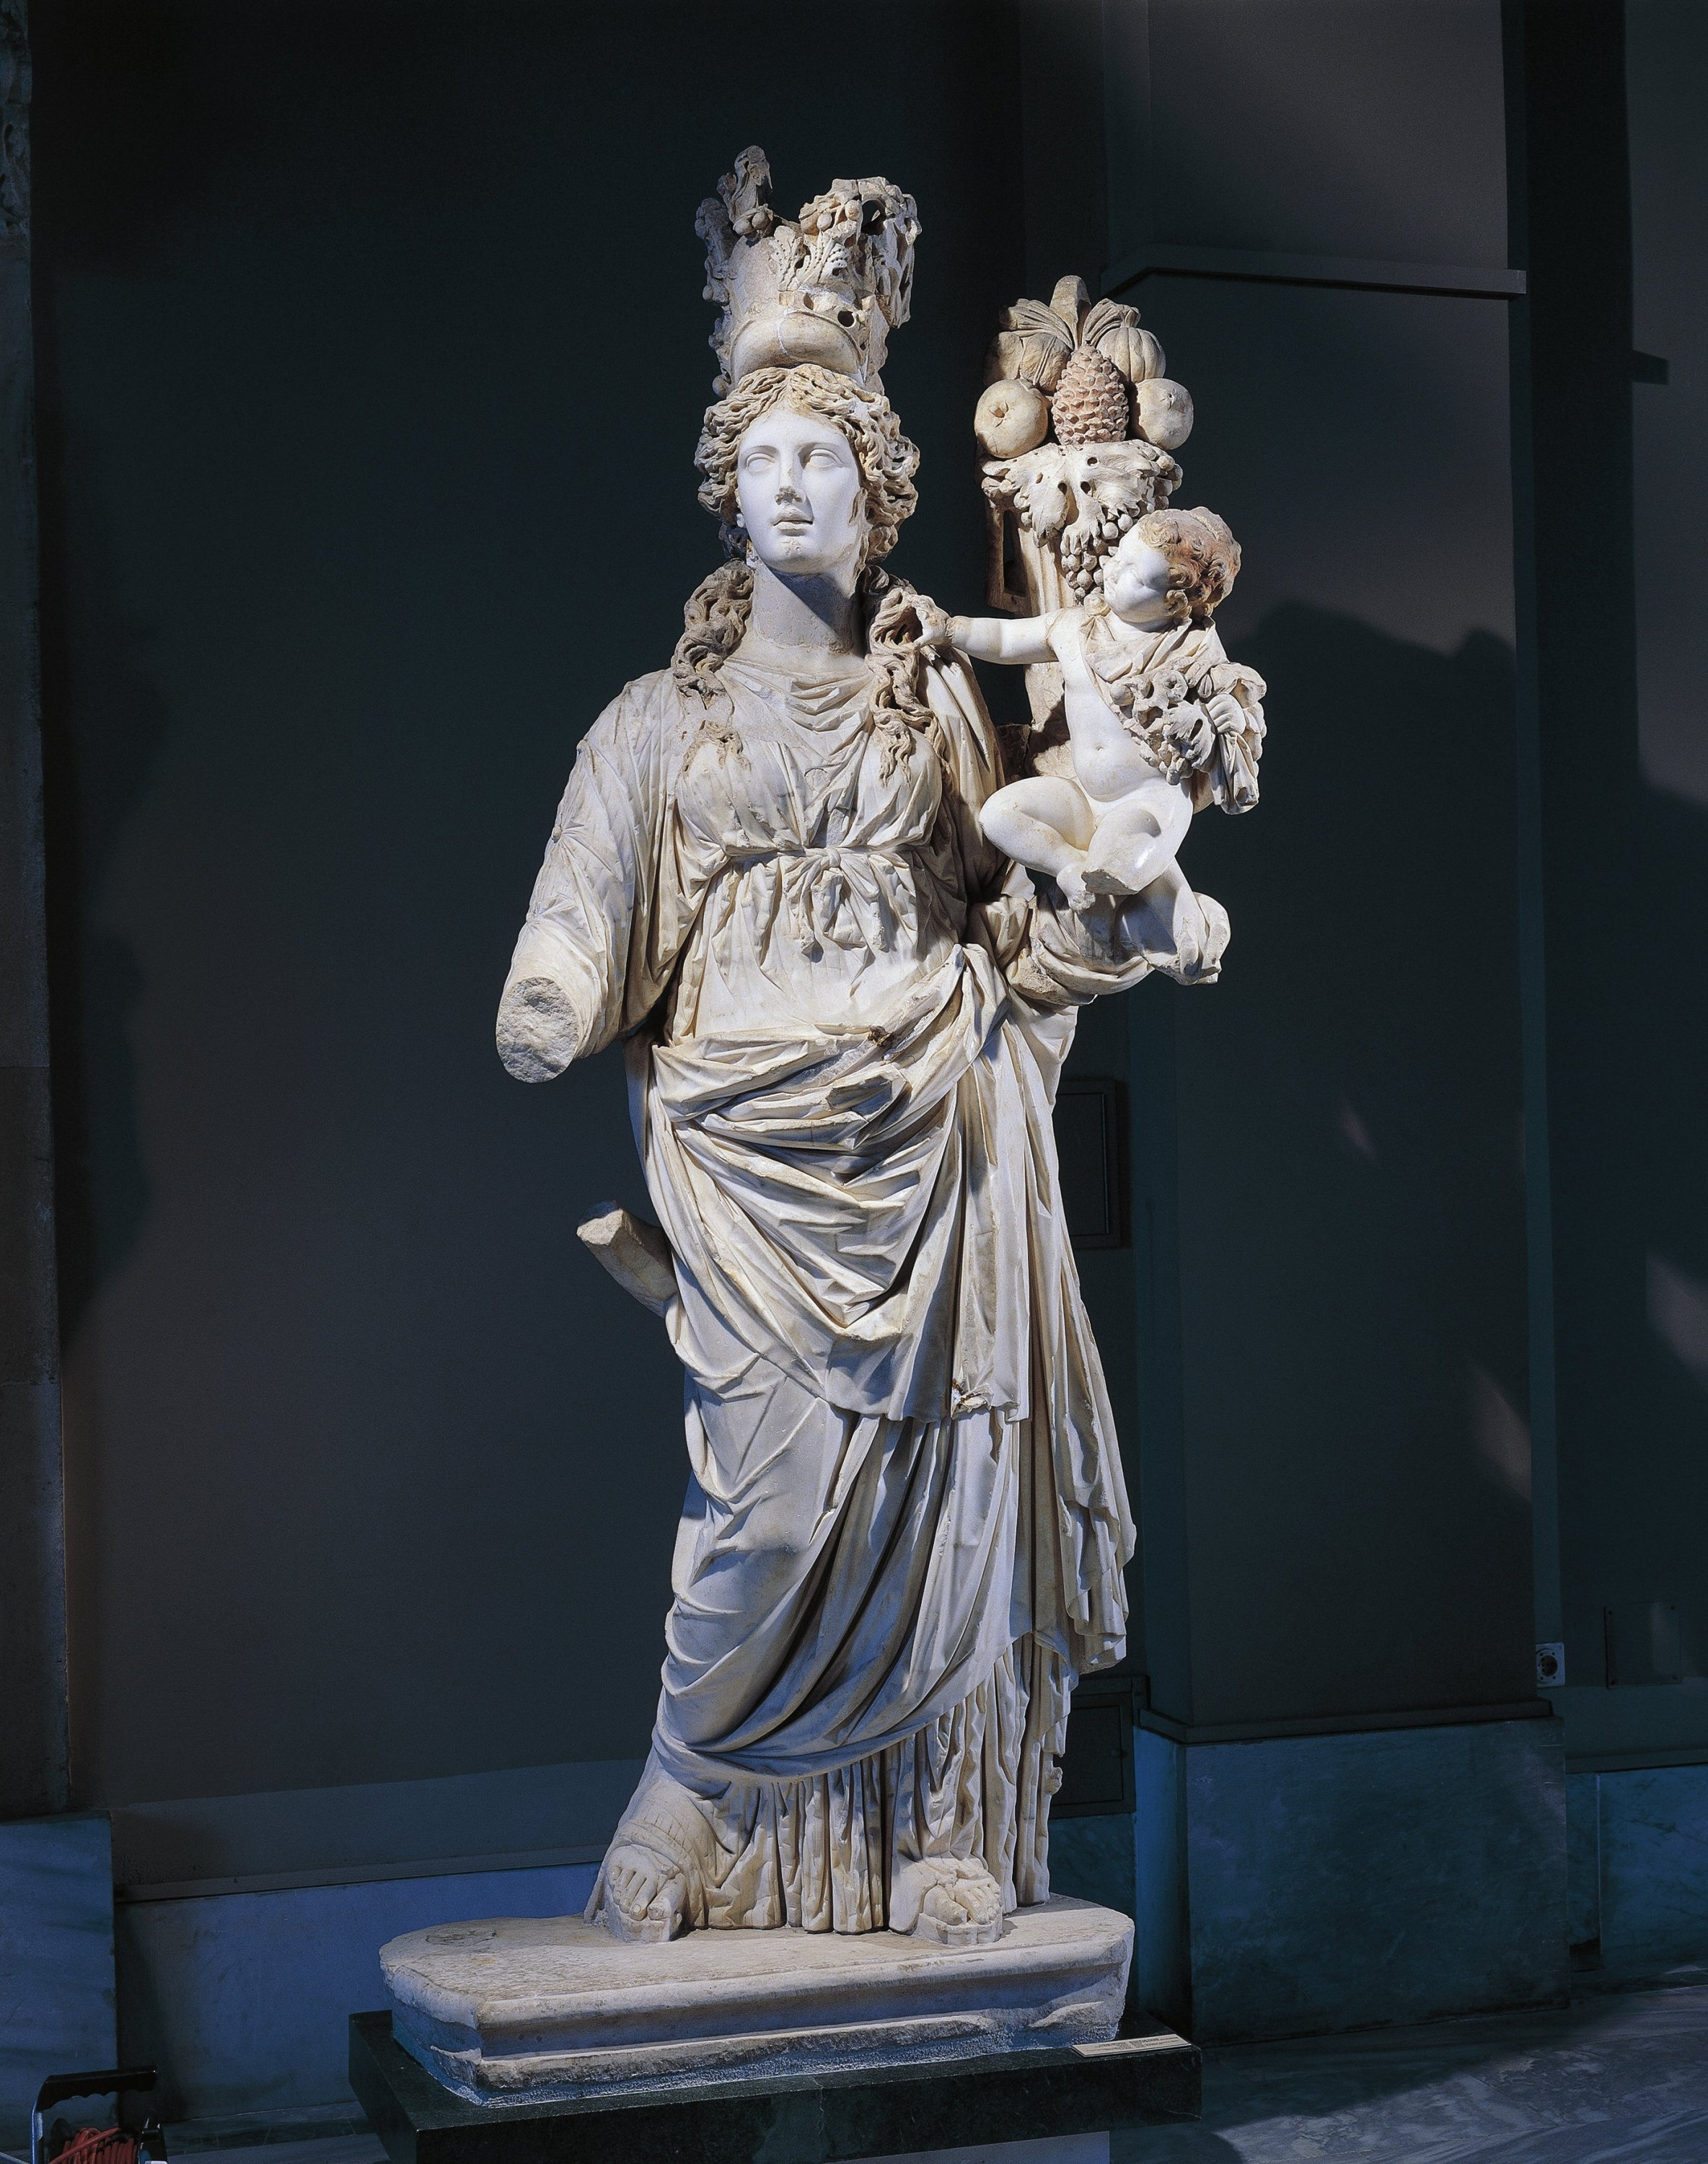 The marble statue of Tyche from Prusias ad Hypium in the Istanbul Archaeology Museum, Istanbul, Turkey.  (Getty Images)